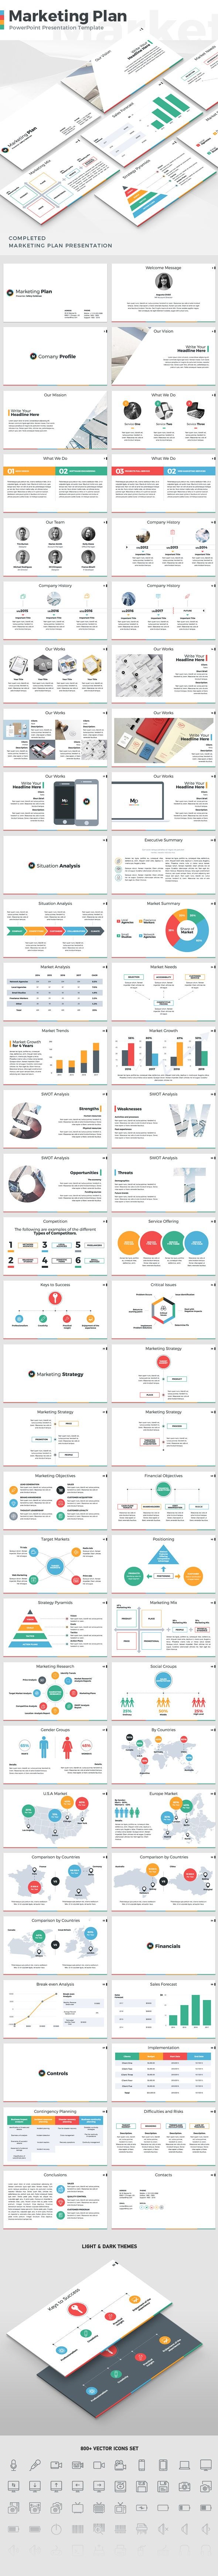 Marketing Plan - PowerPoint Presentation Template (PowerPoint Templates)